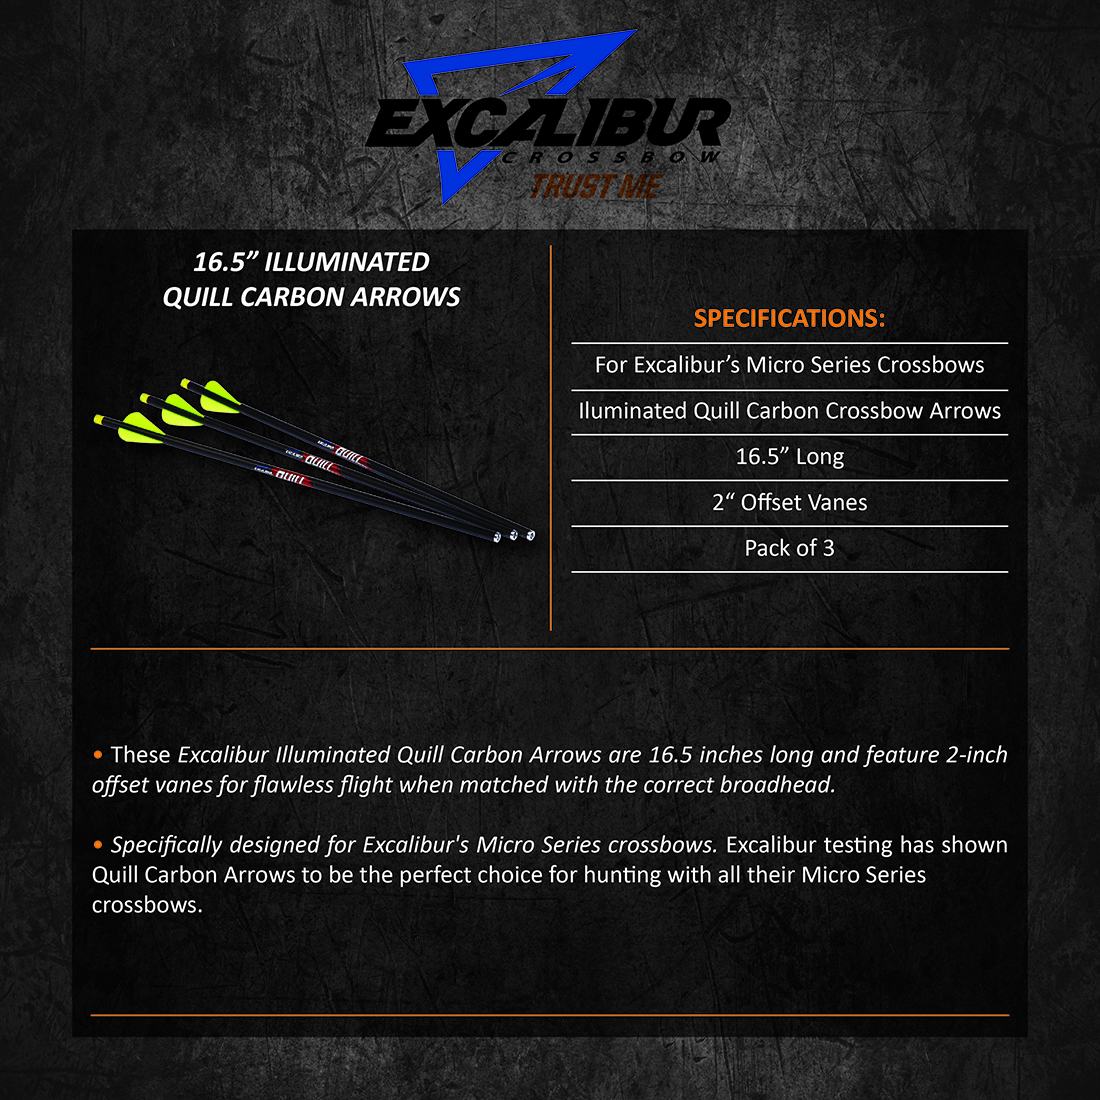 Excalibur_Illuminated_Quill_Carbon_Arrows_3pk16.5in_Product_Description